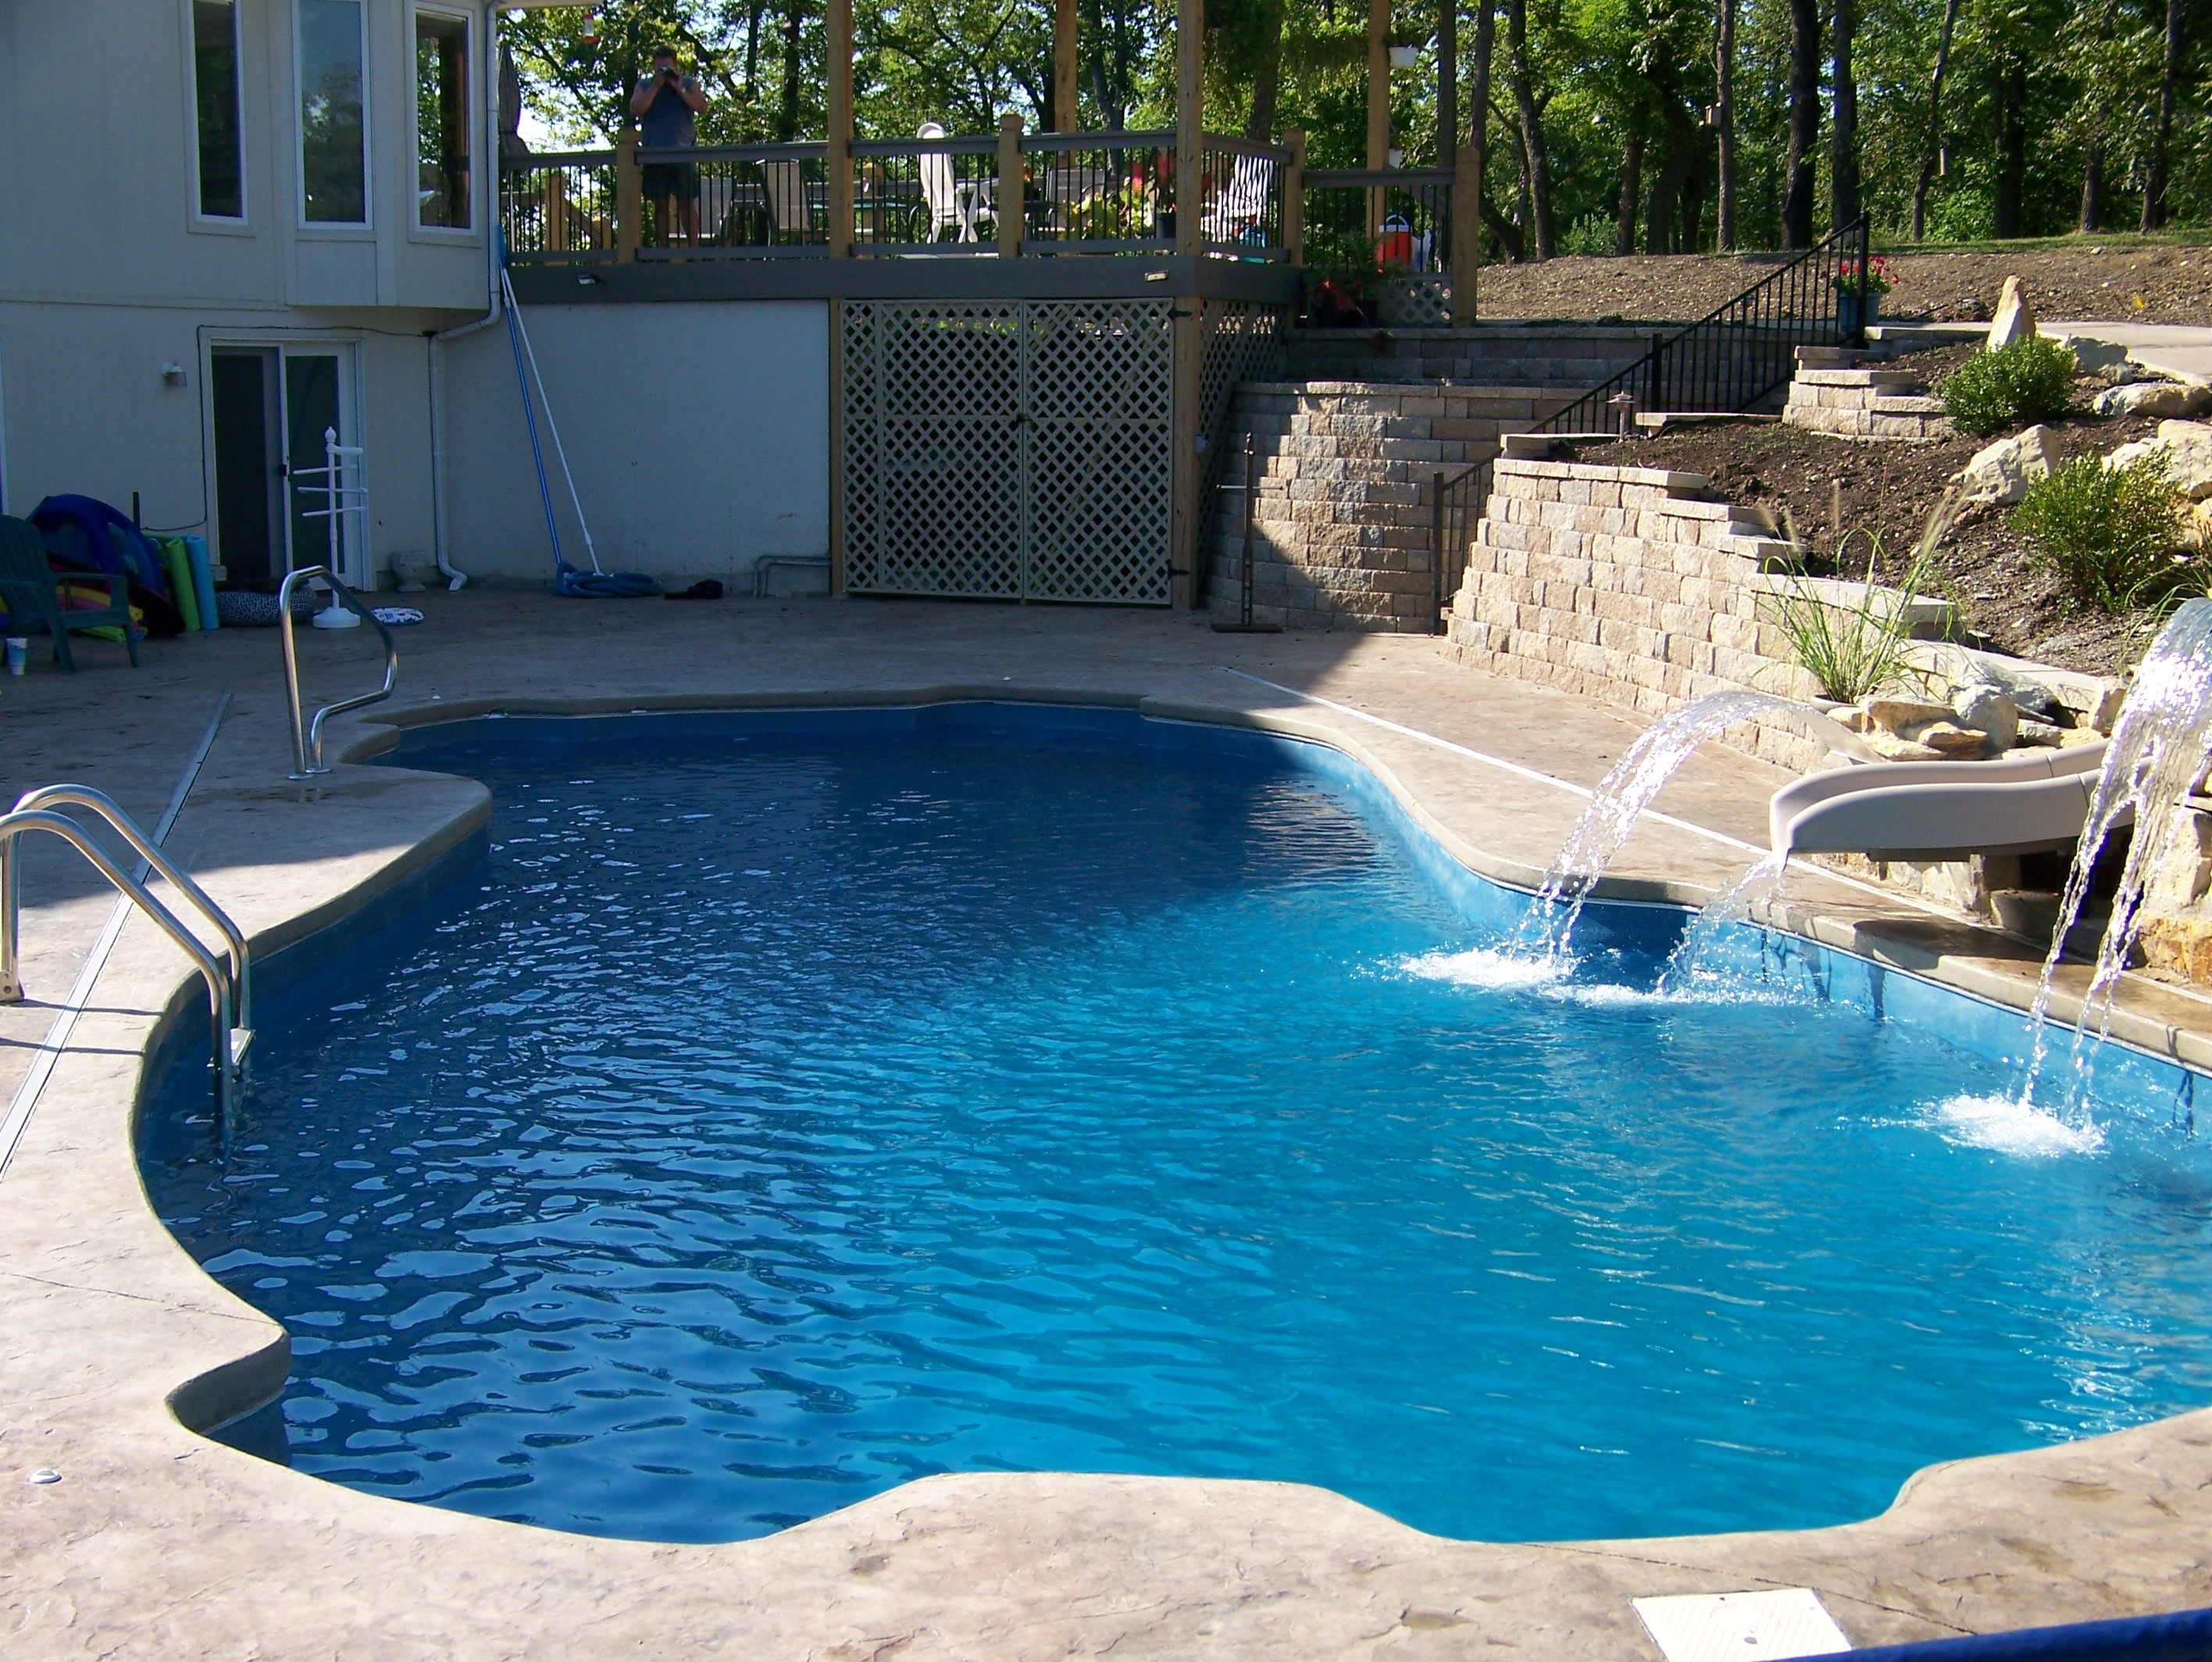 Fiberglass pool upper deck swimming pool contractor tulsa ok - Swimming pool contractors oklahoma city ...